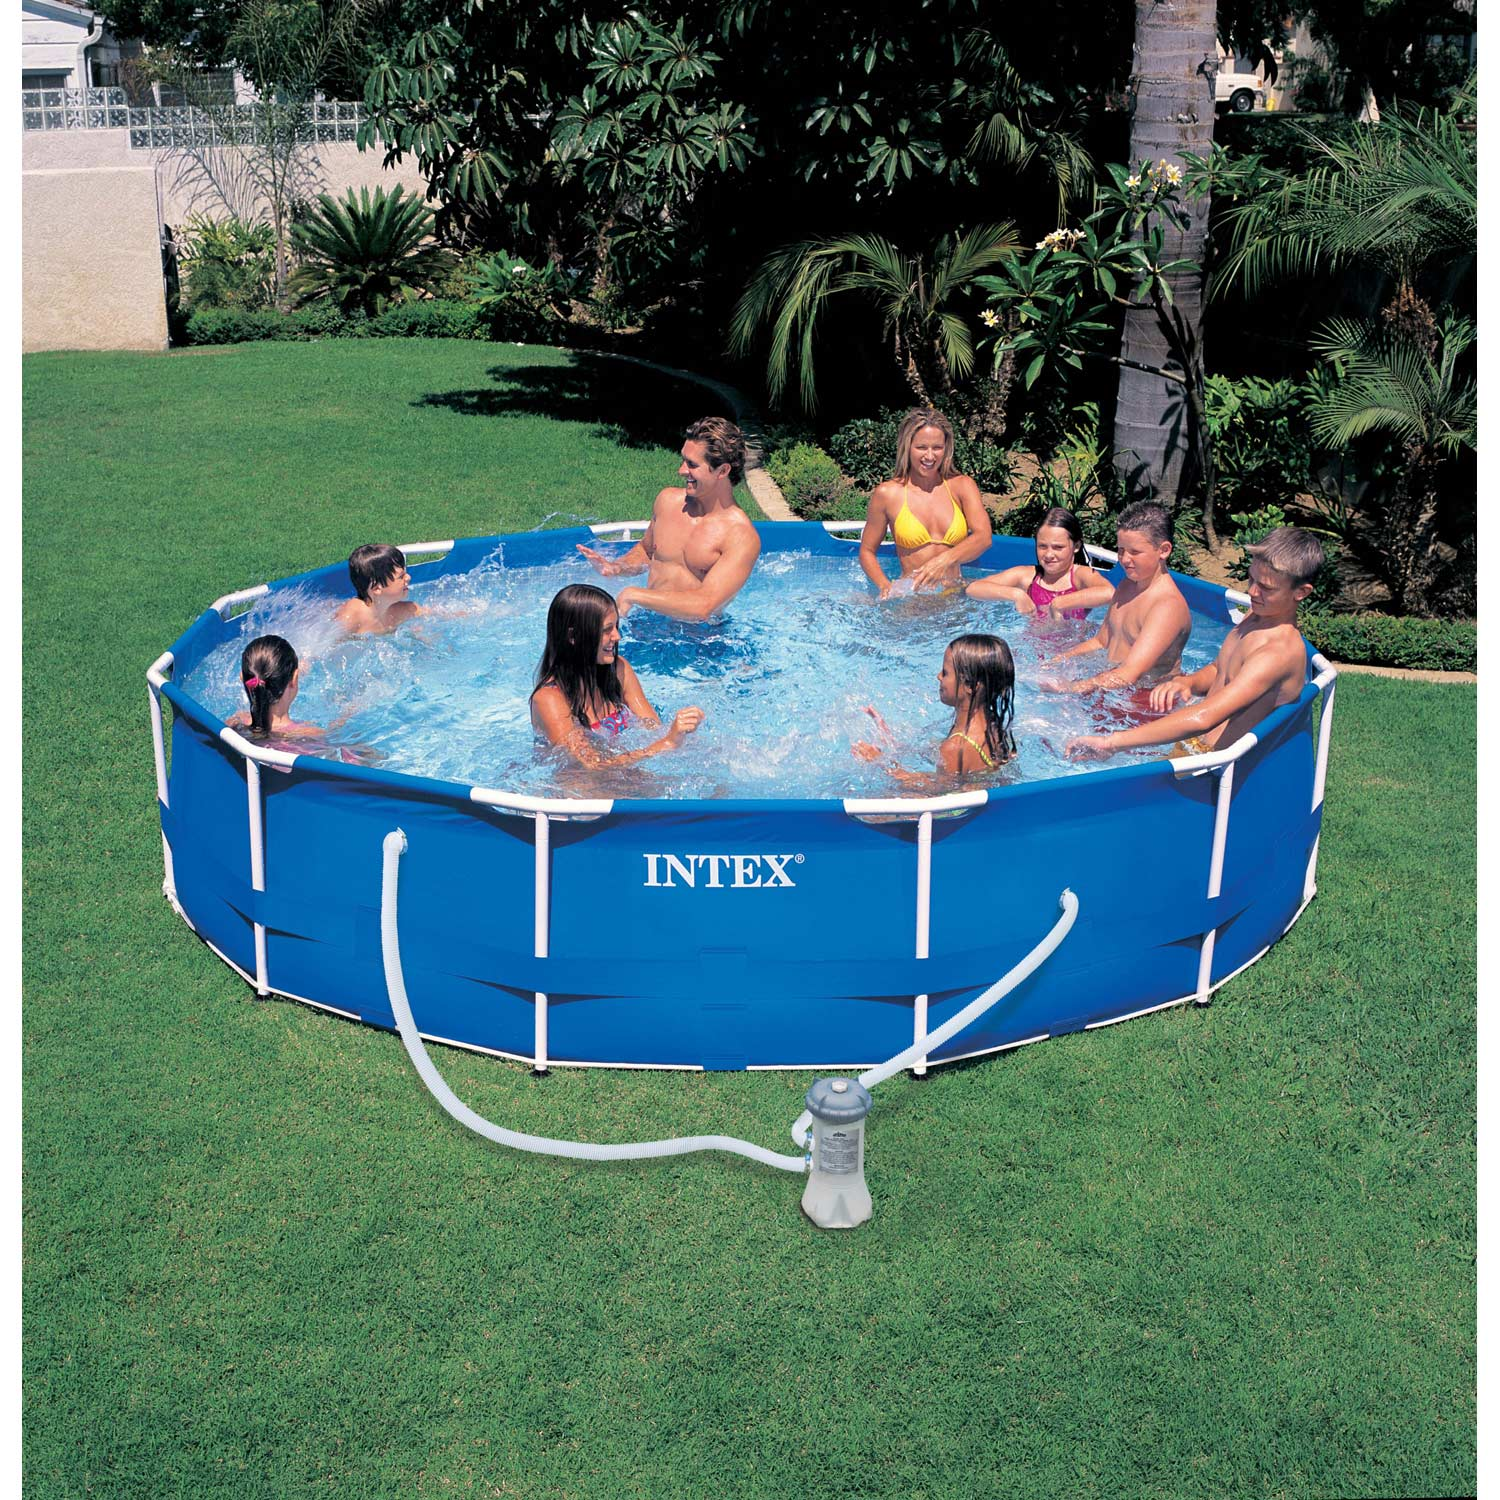 Piscine hors sol autoportante tubulaire metal frame intex for Piscine intex hors sol rectangulaire